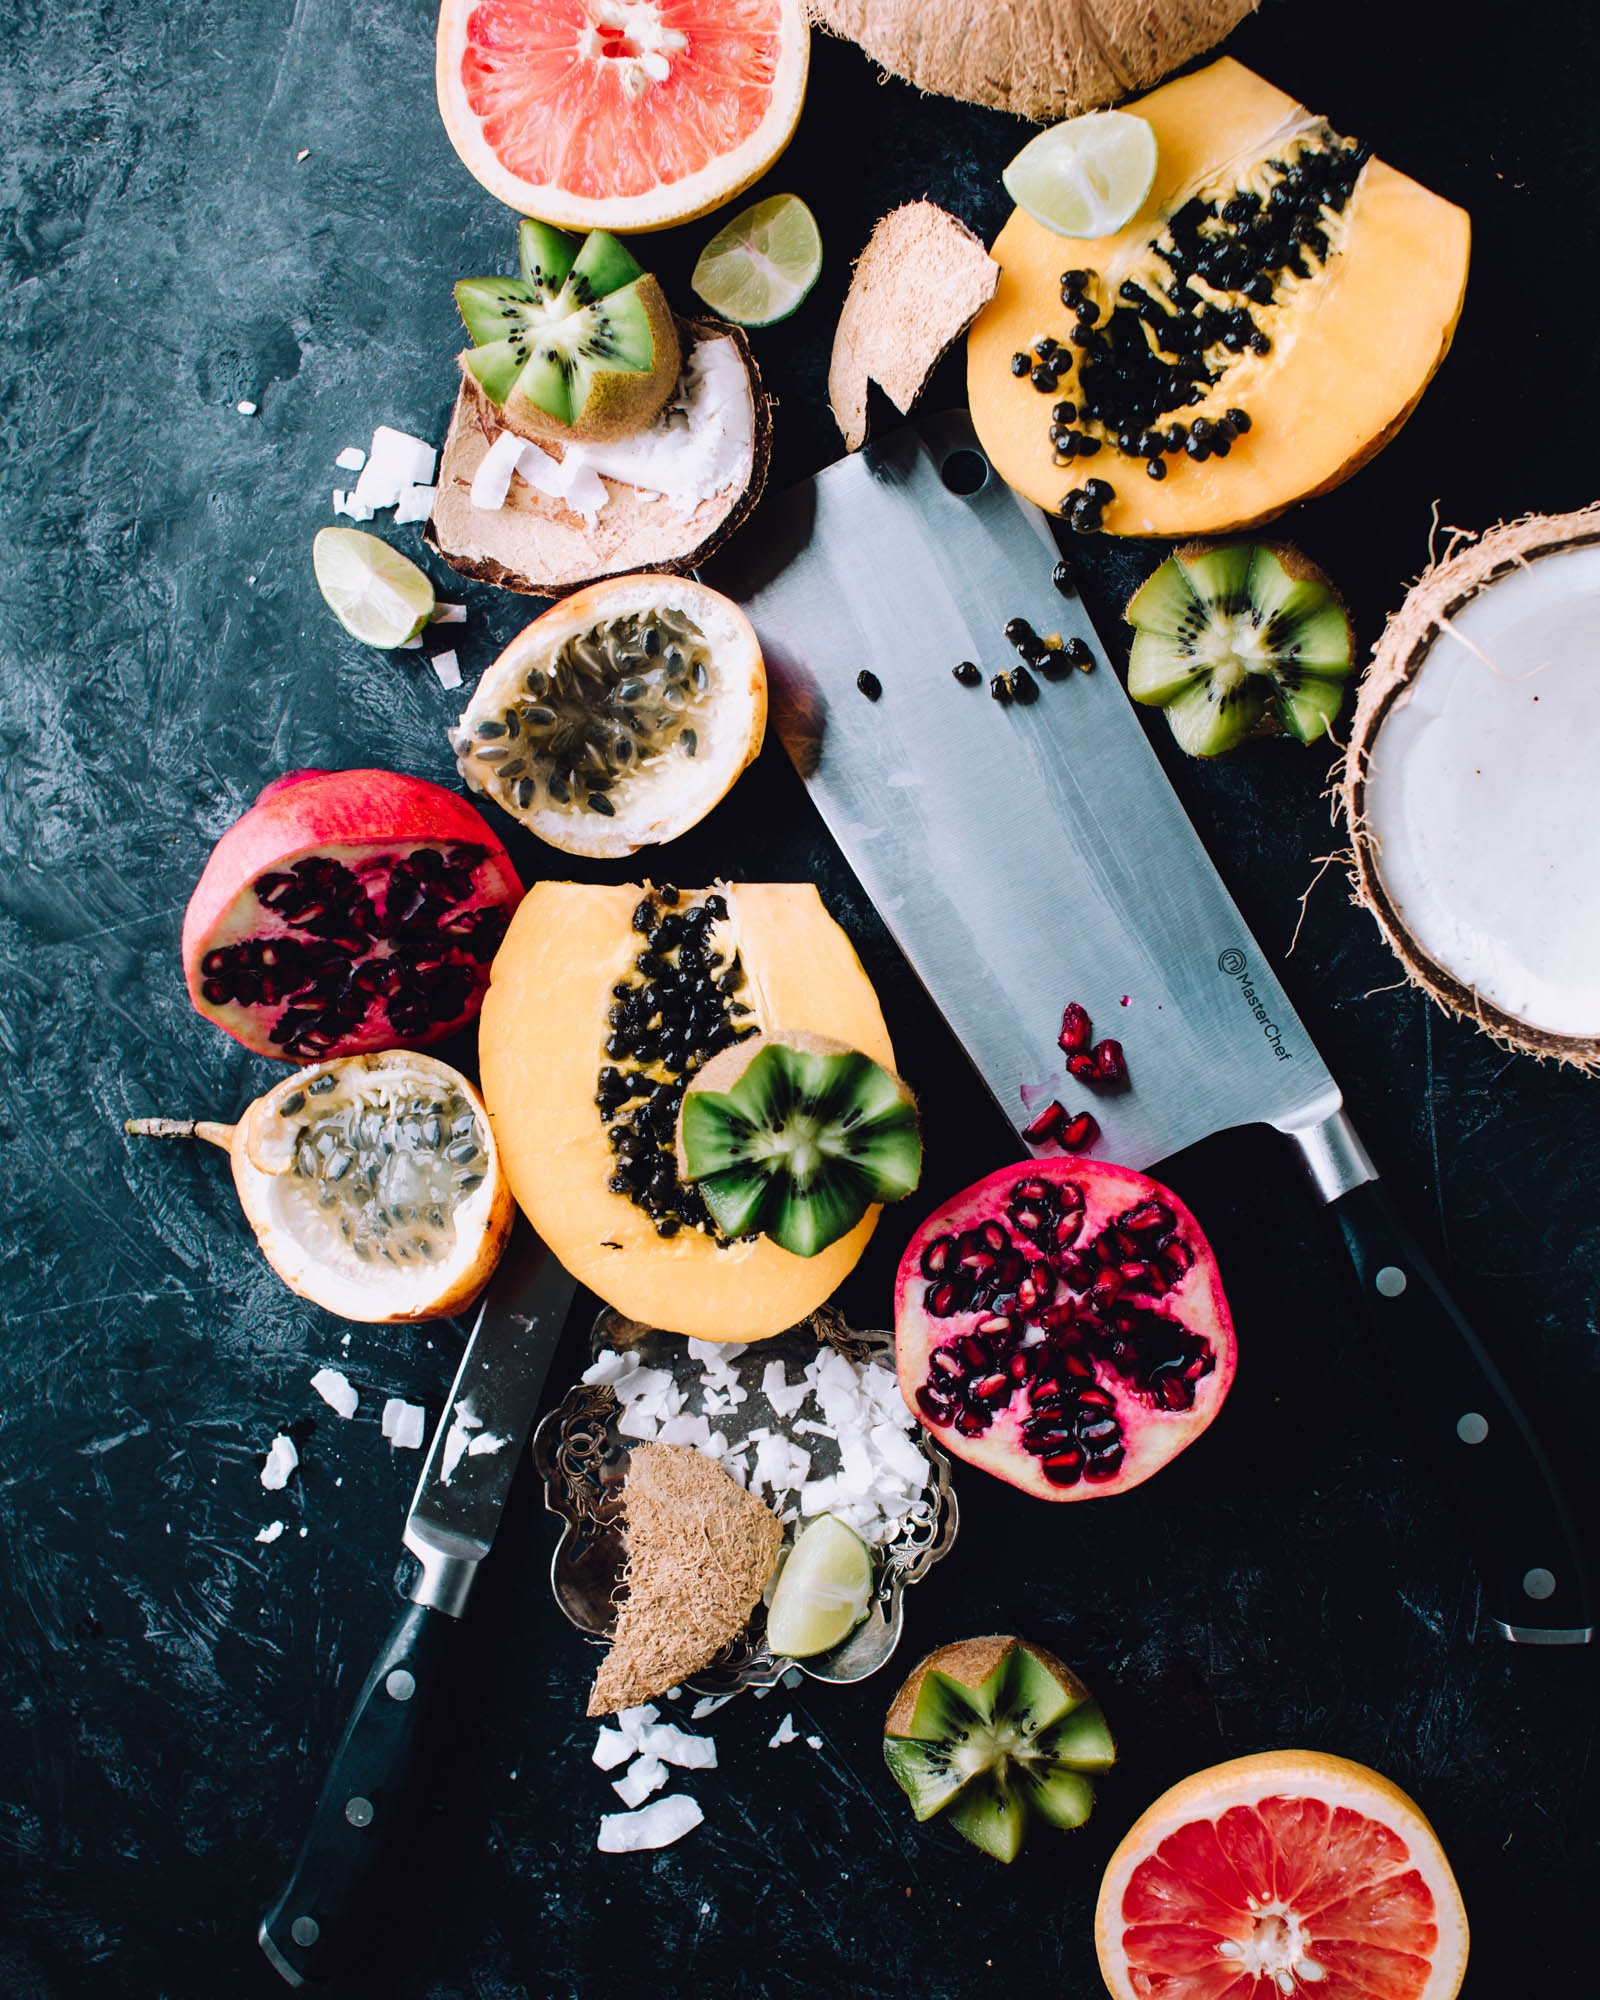 food-photographer-jennifer-pallian-650631-unsplash (1).jpg